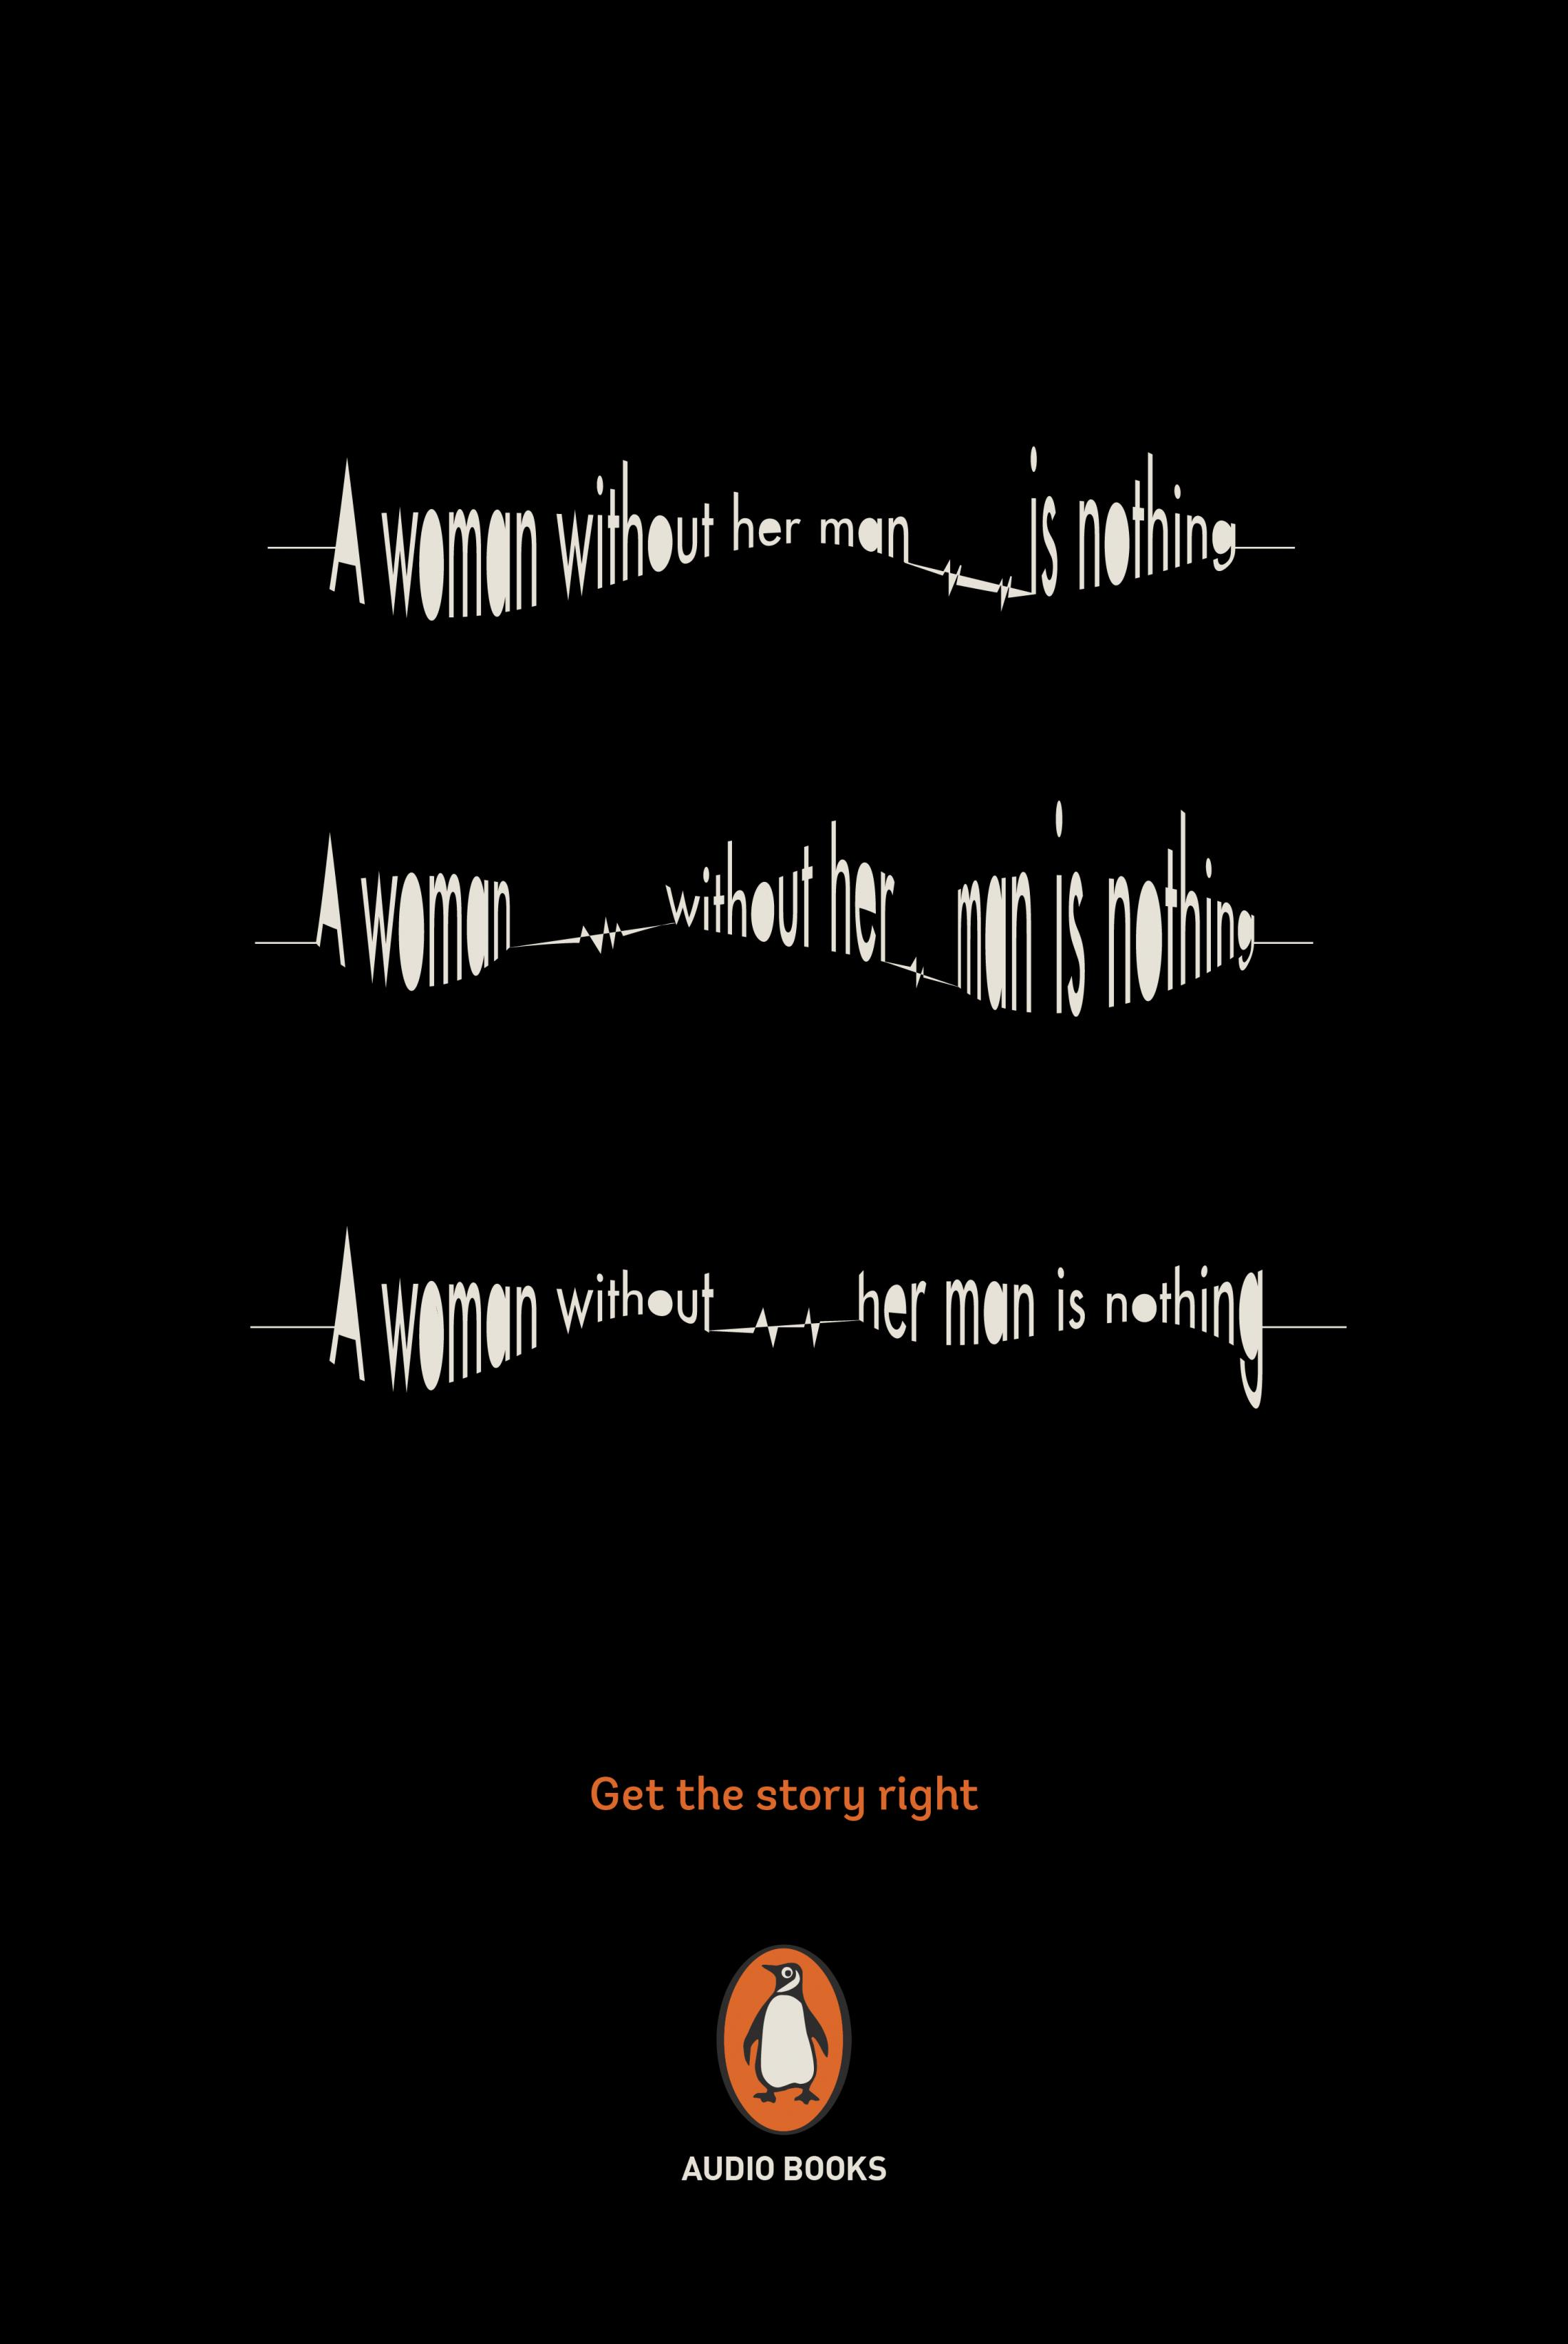 Penguin Print Ad - Get the Story Right, 2